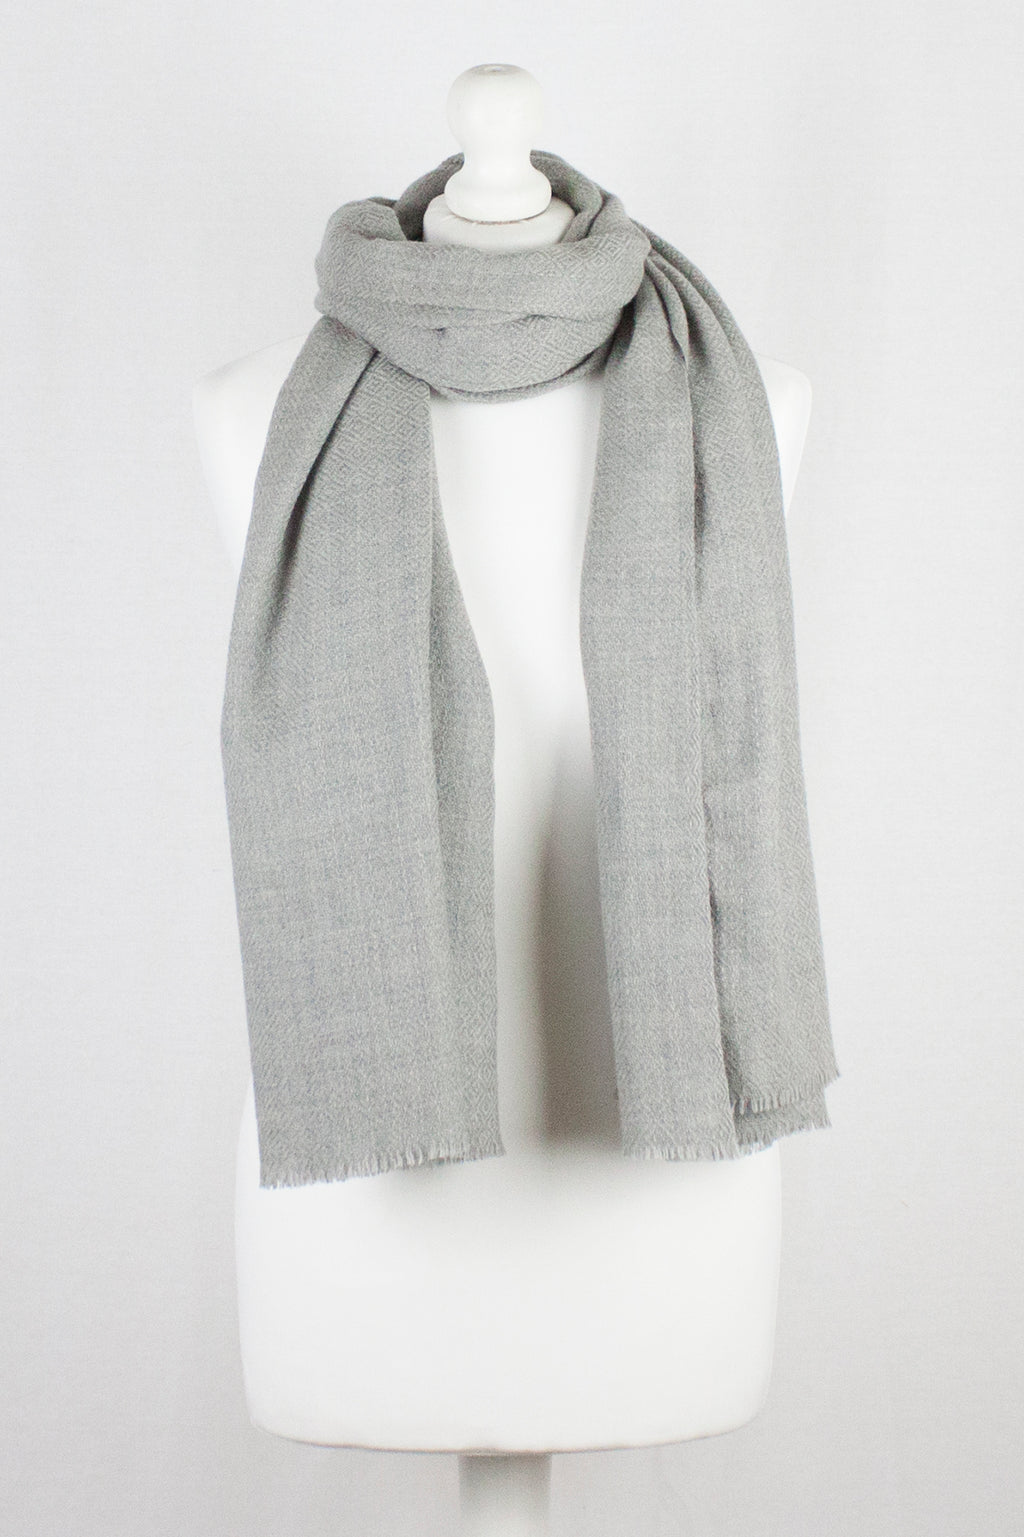 Diamond Weave Merino Wool Scarf - Ice Grey